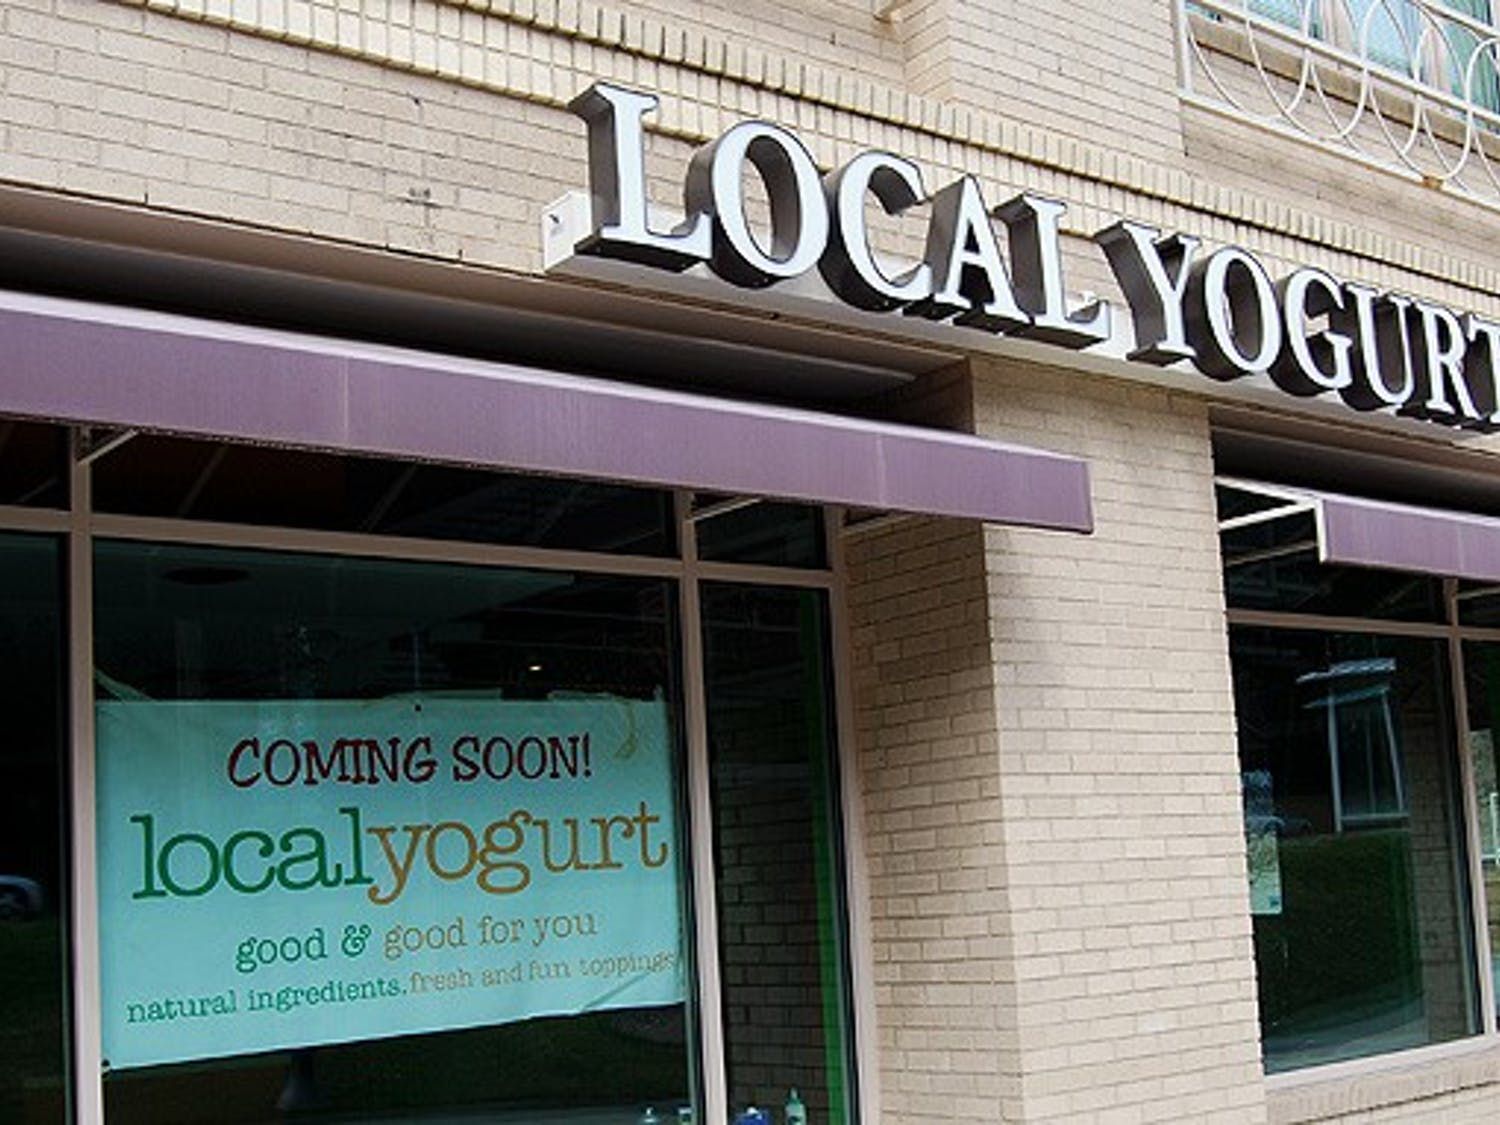 Local Yogurt is responding to increased demand by opening a fourth store in the Erwin Terrace complex on Erwin Road.